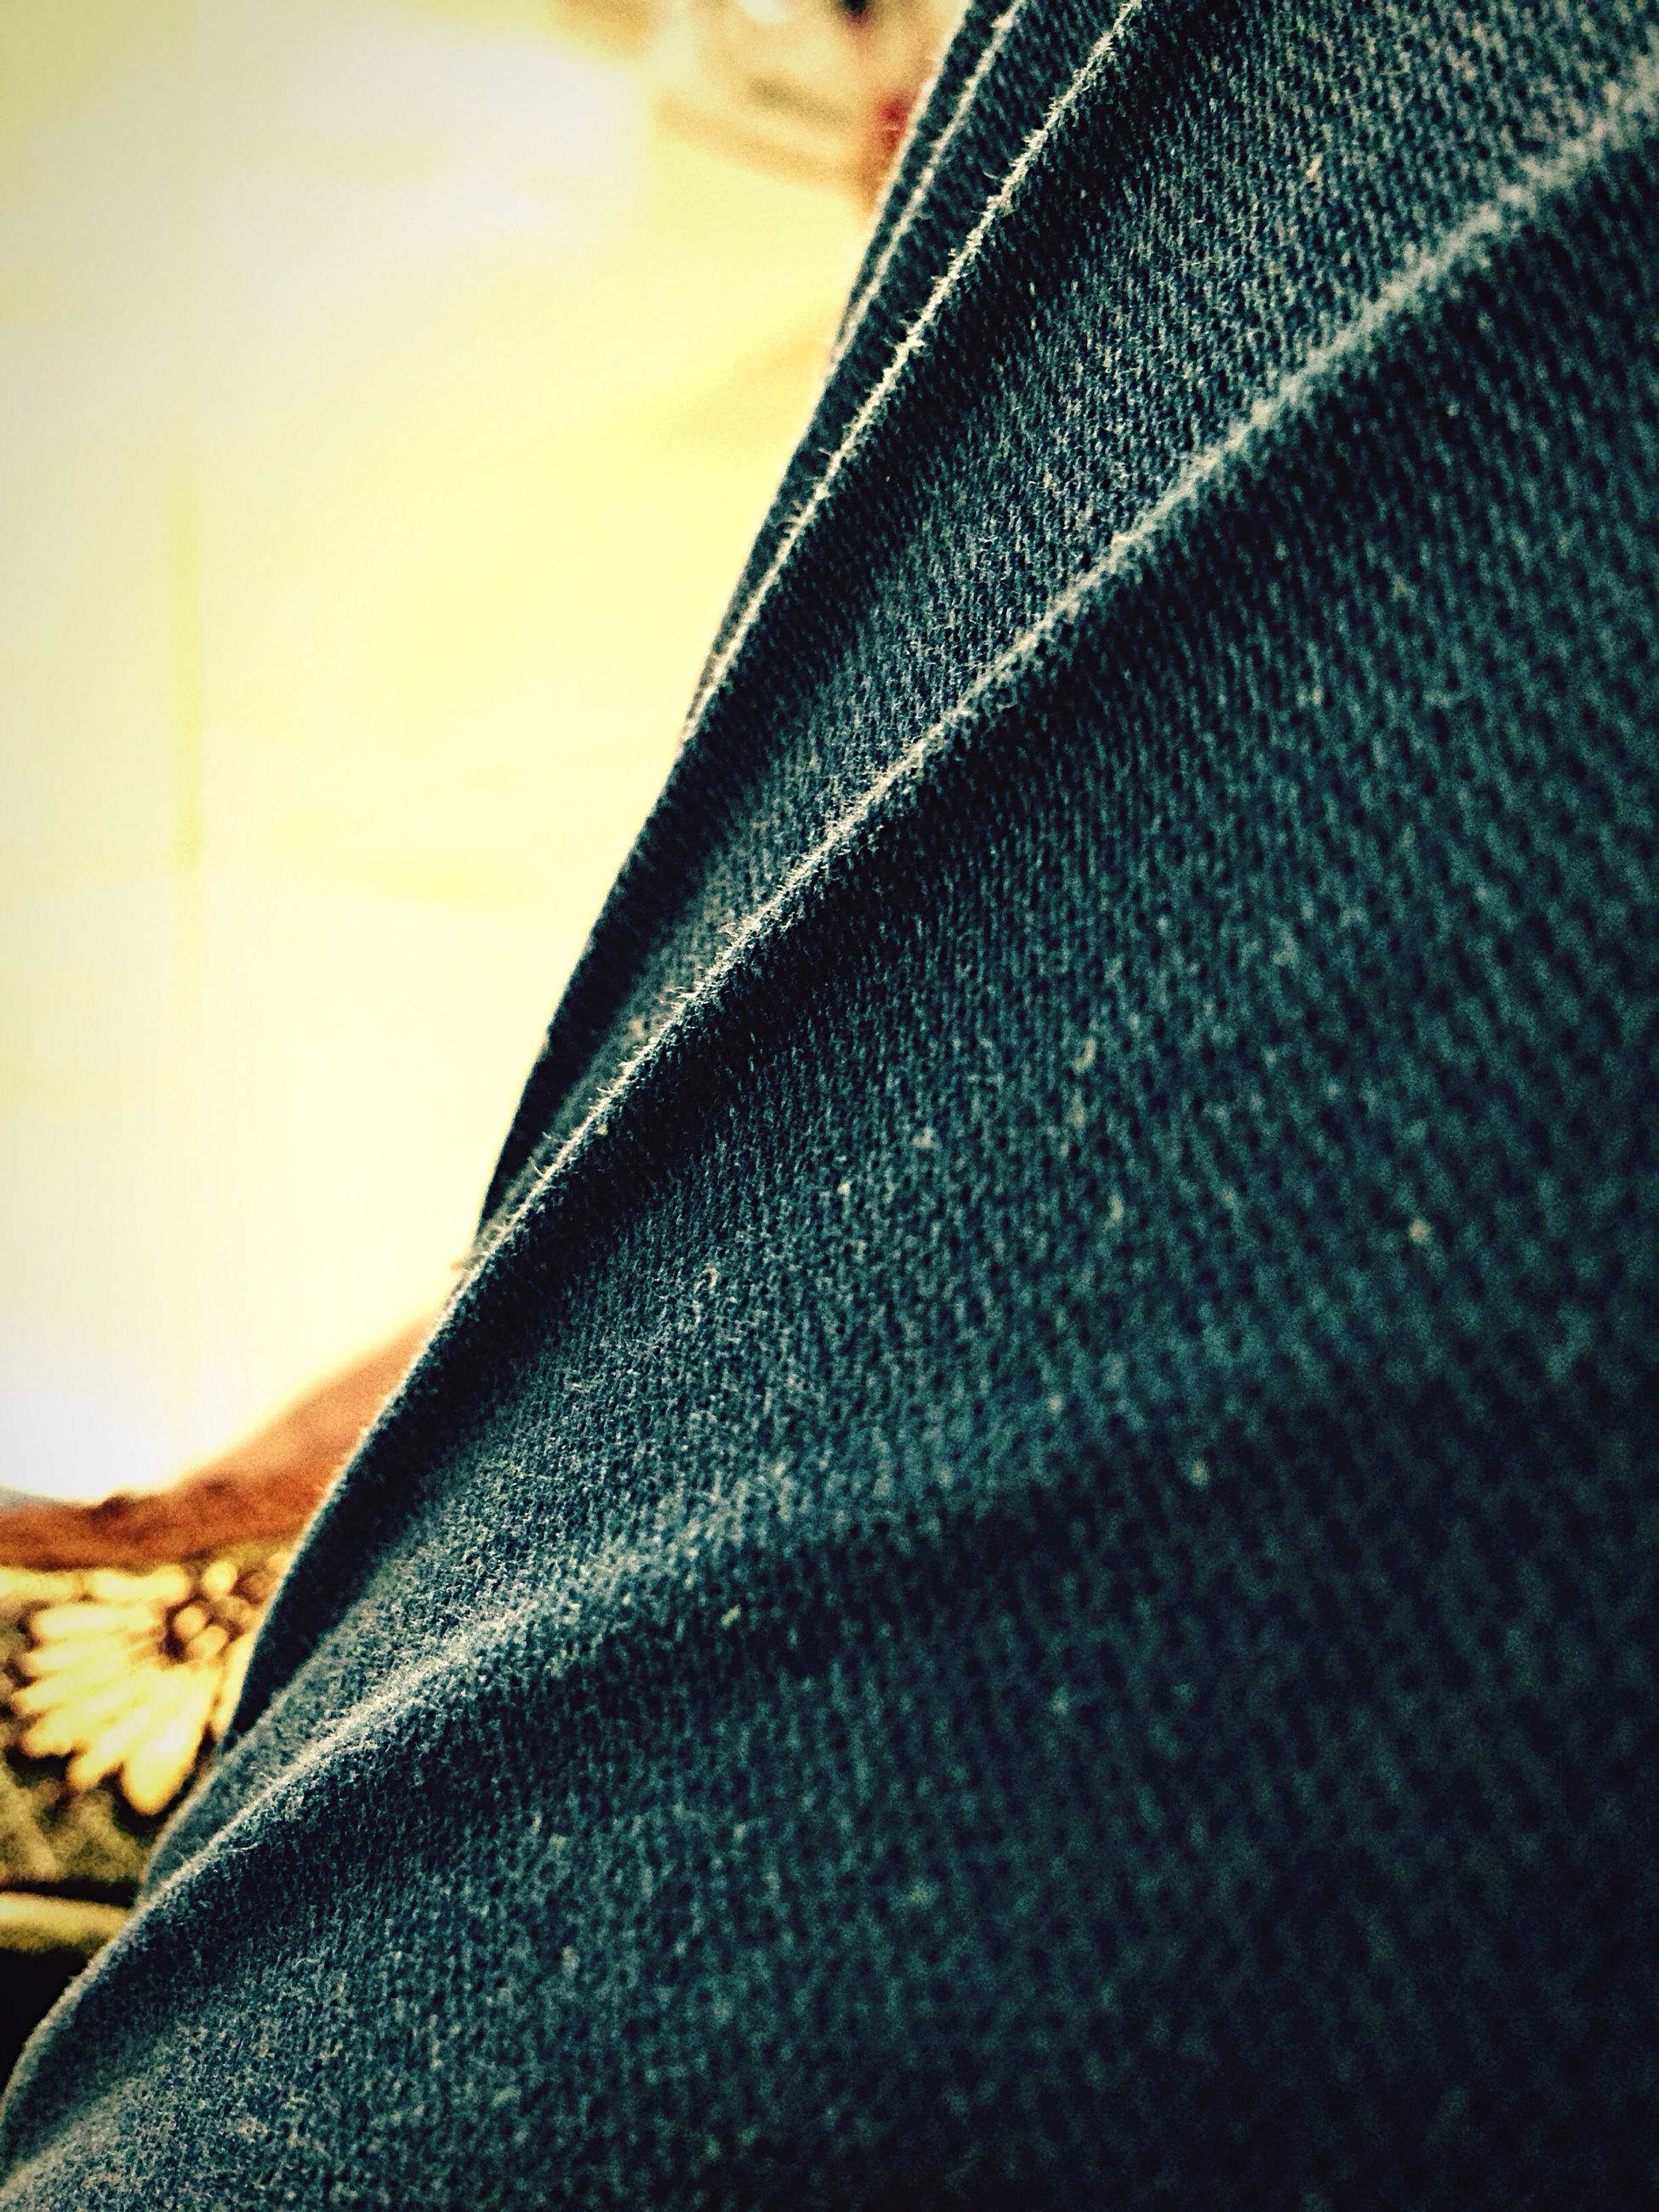 close-up, indoors, person, jeans, casual clothing, focus on foreground, personal perspective, limb